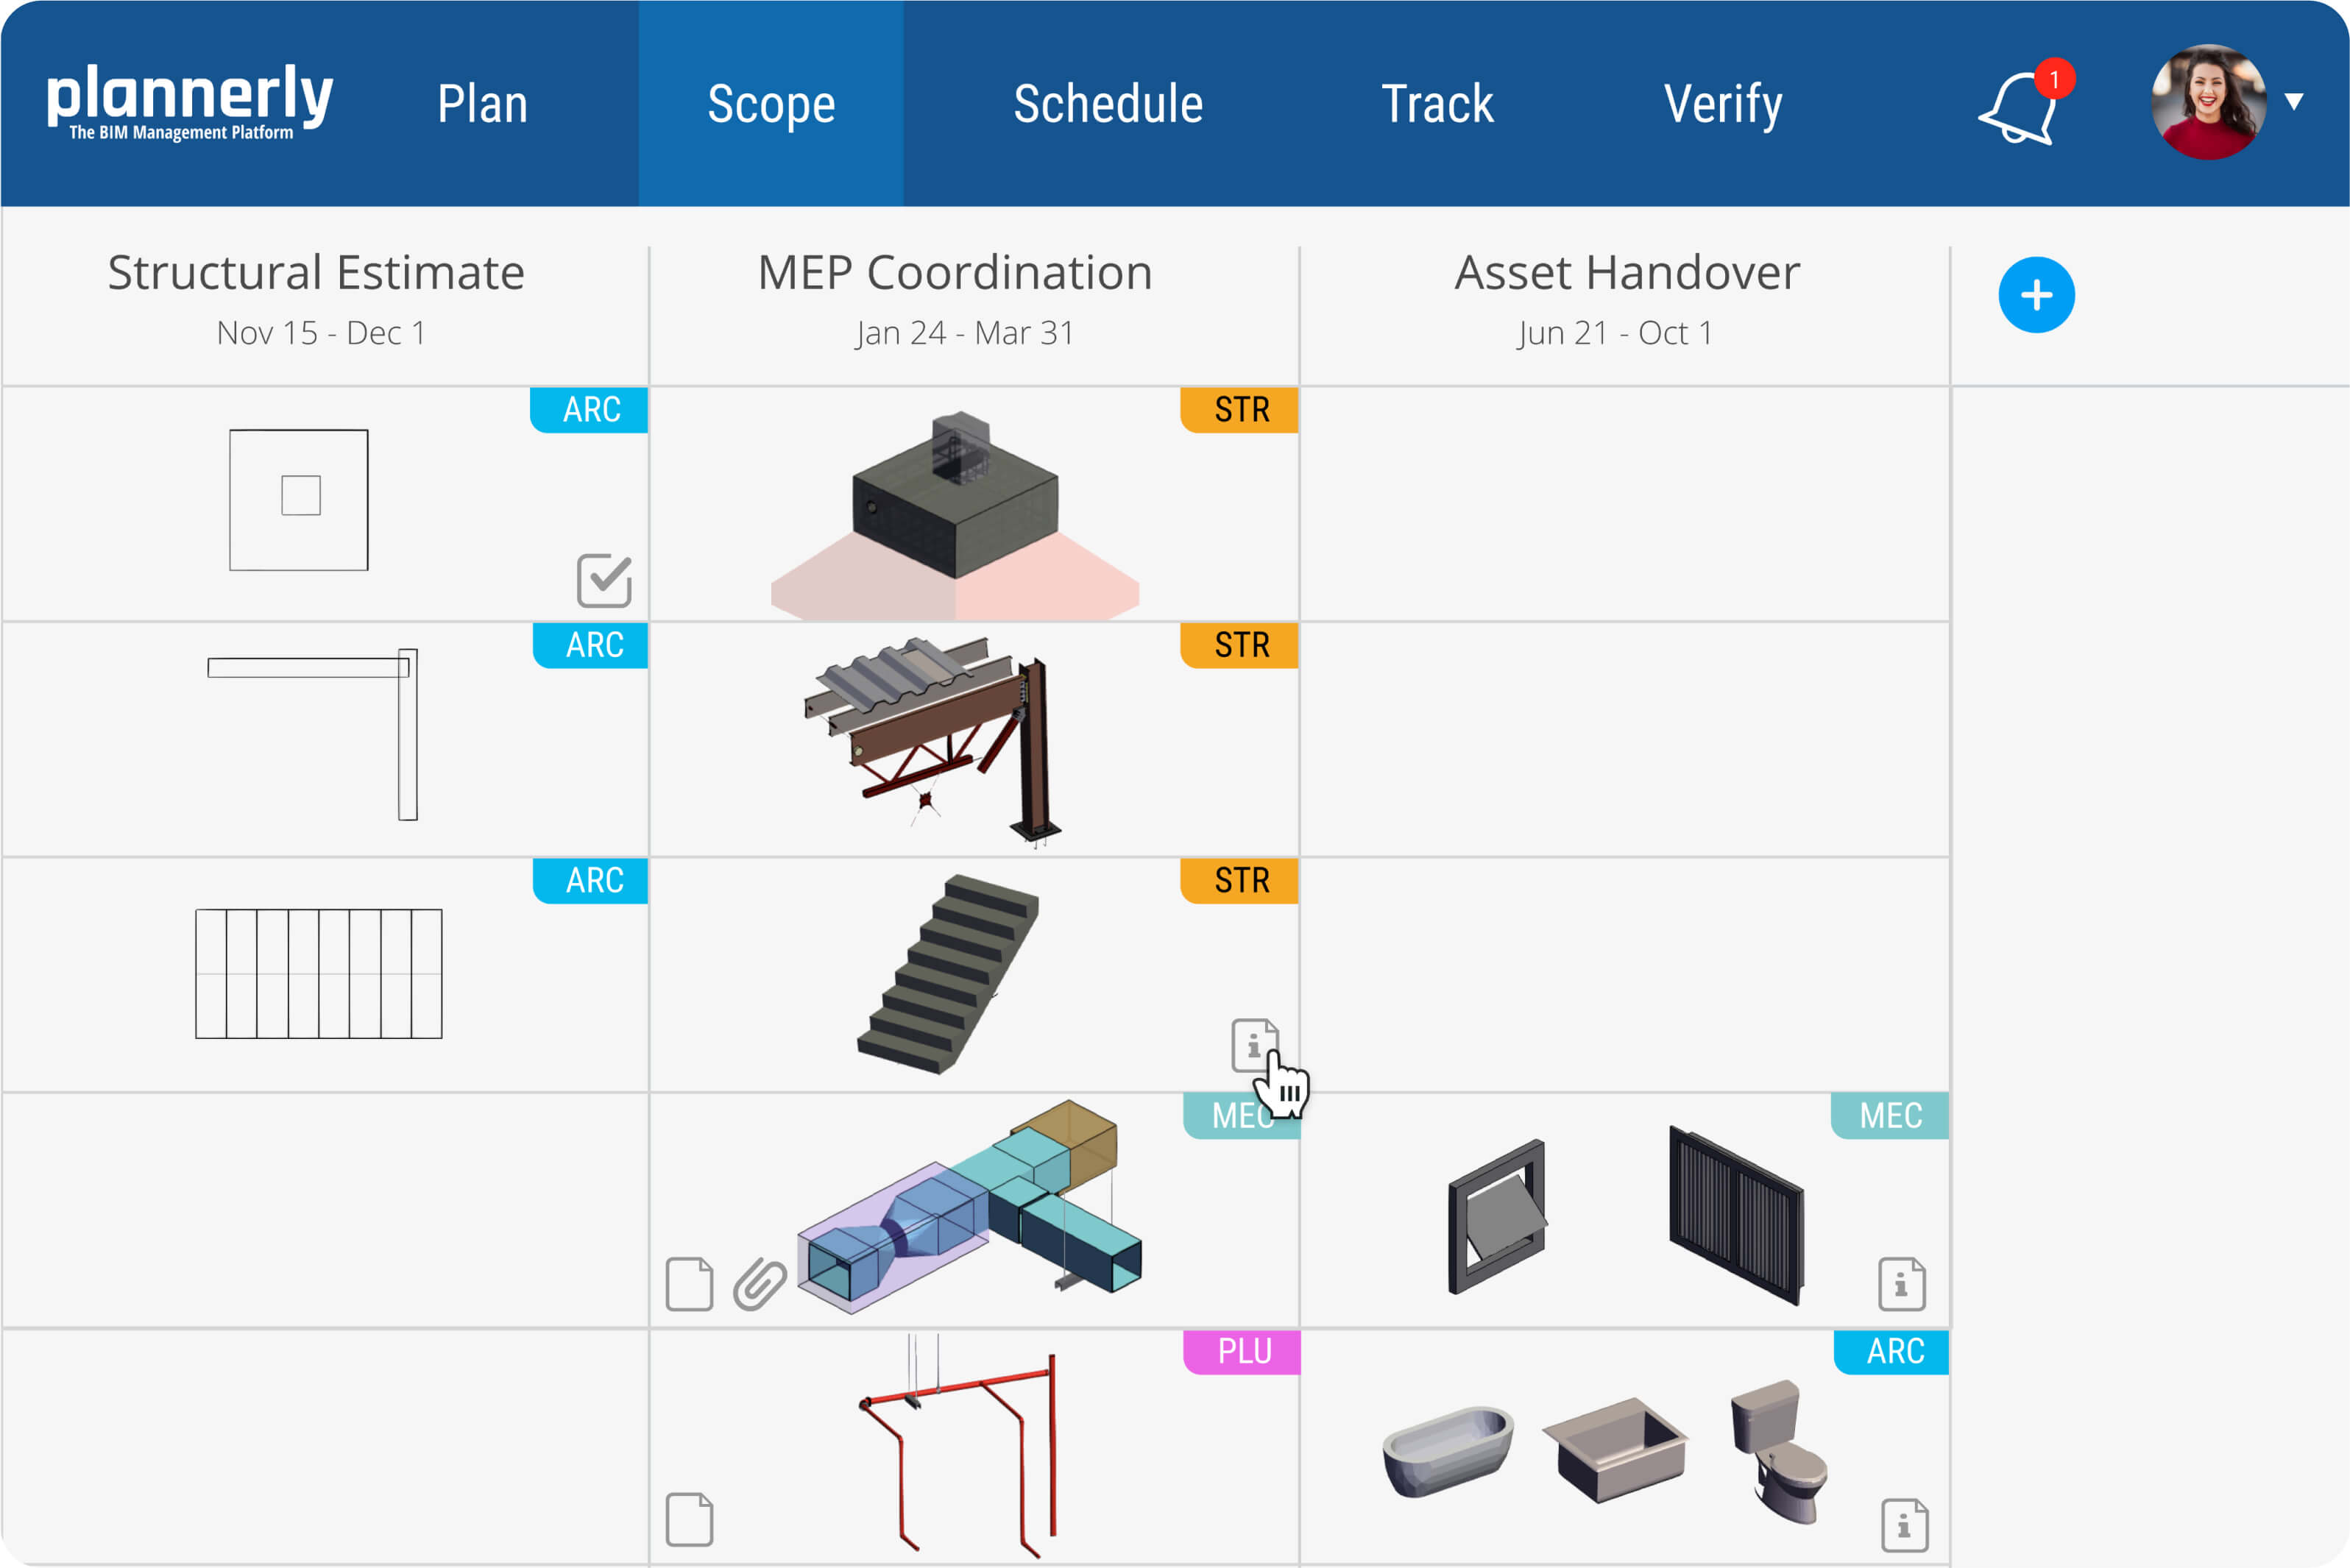 Plannerly - Scope Module - for BIM Requirements Scoping